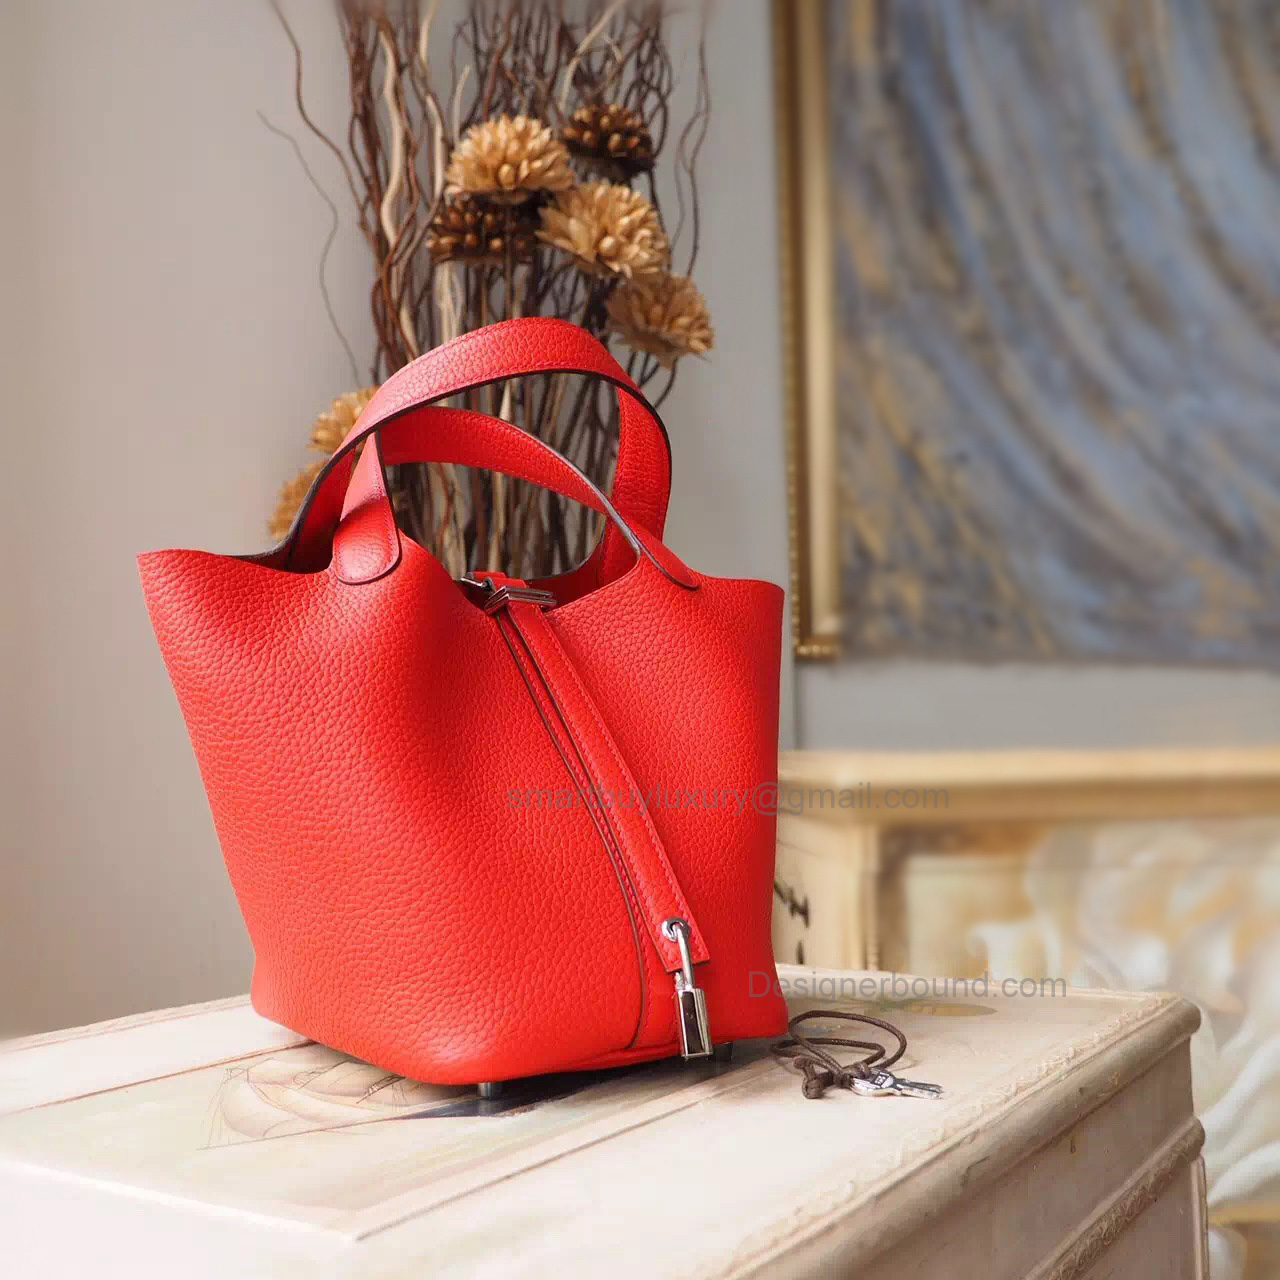 Replica Hermes Picotin Lock 22 Bag Handmade in s5 Rouge Tomate Clemence